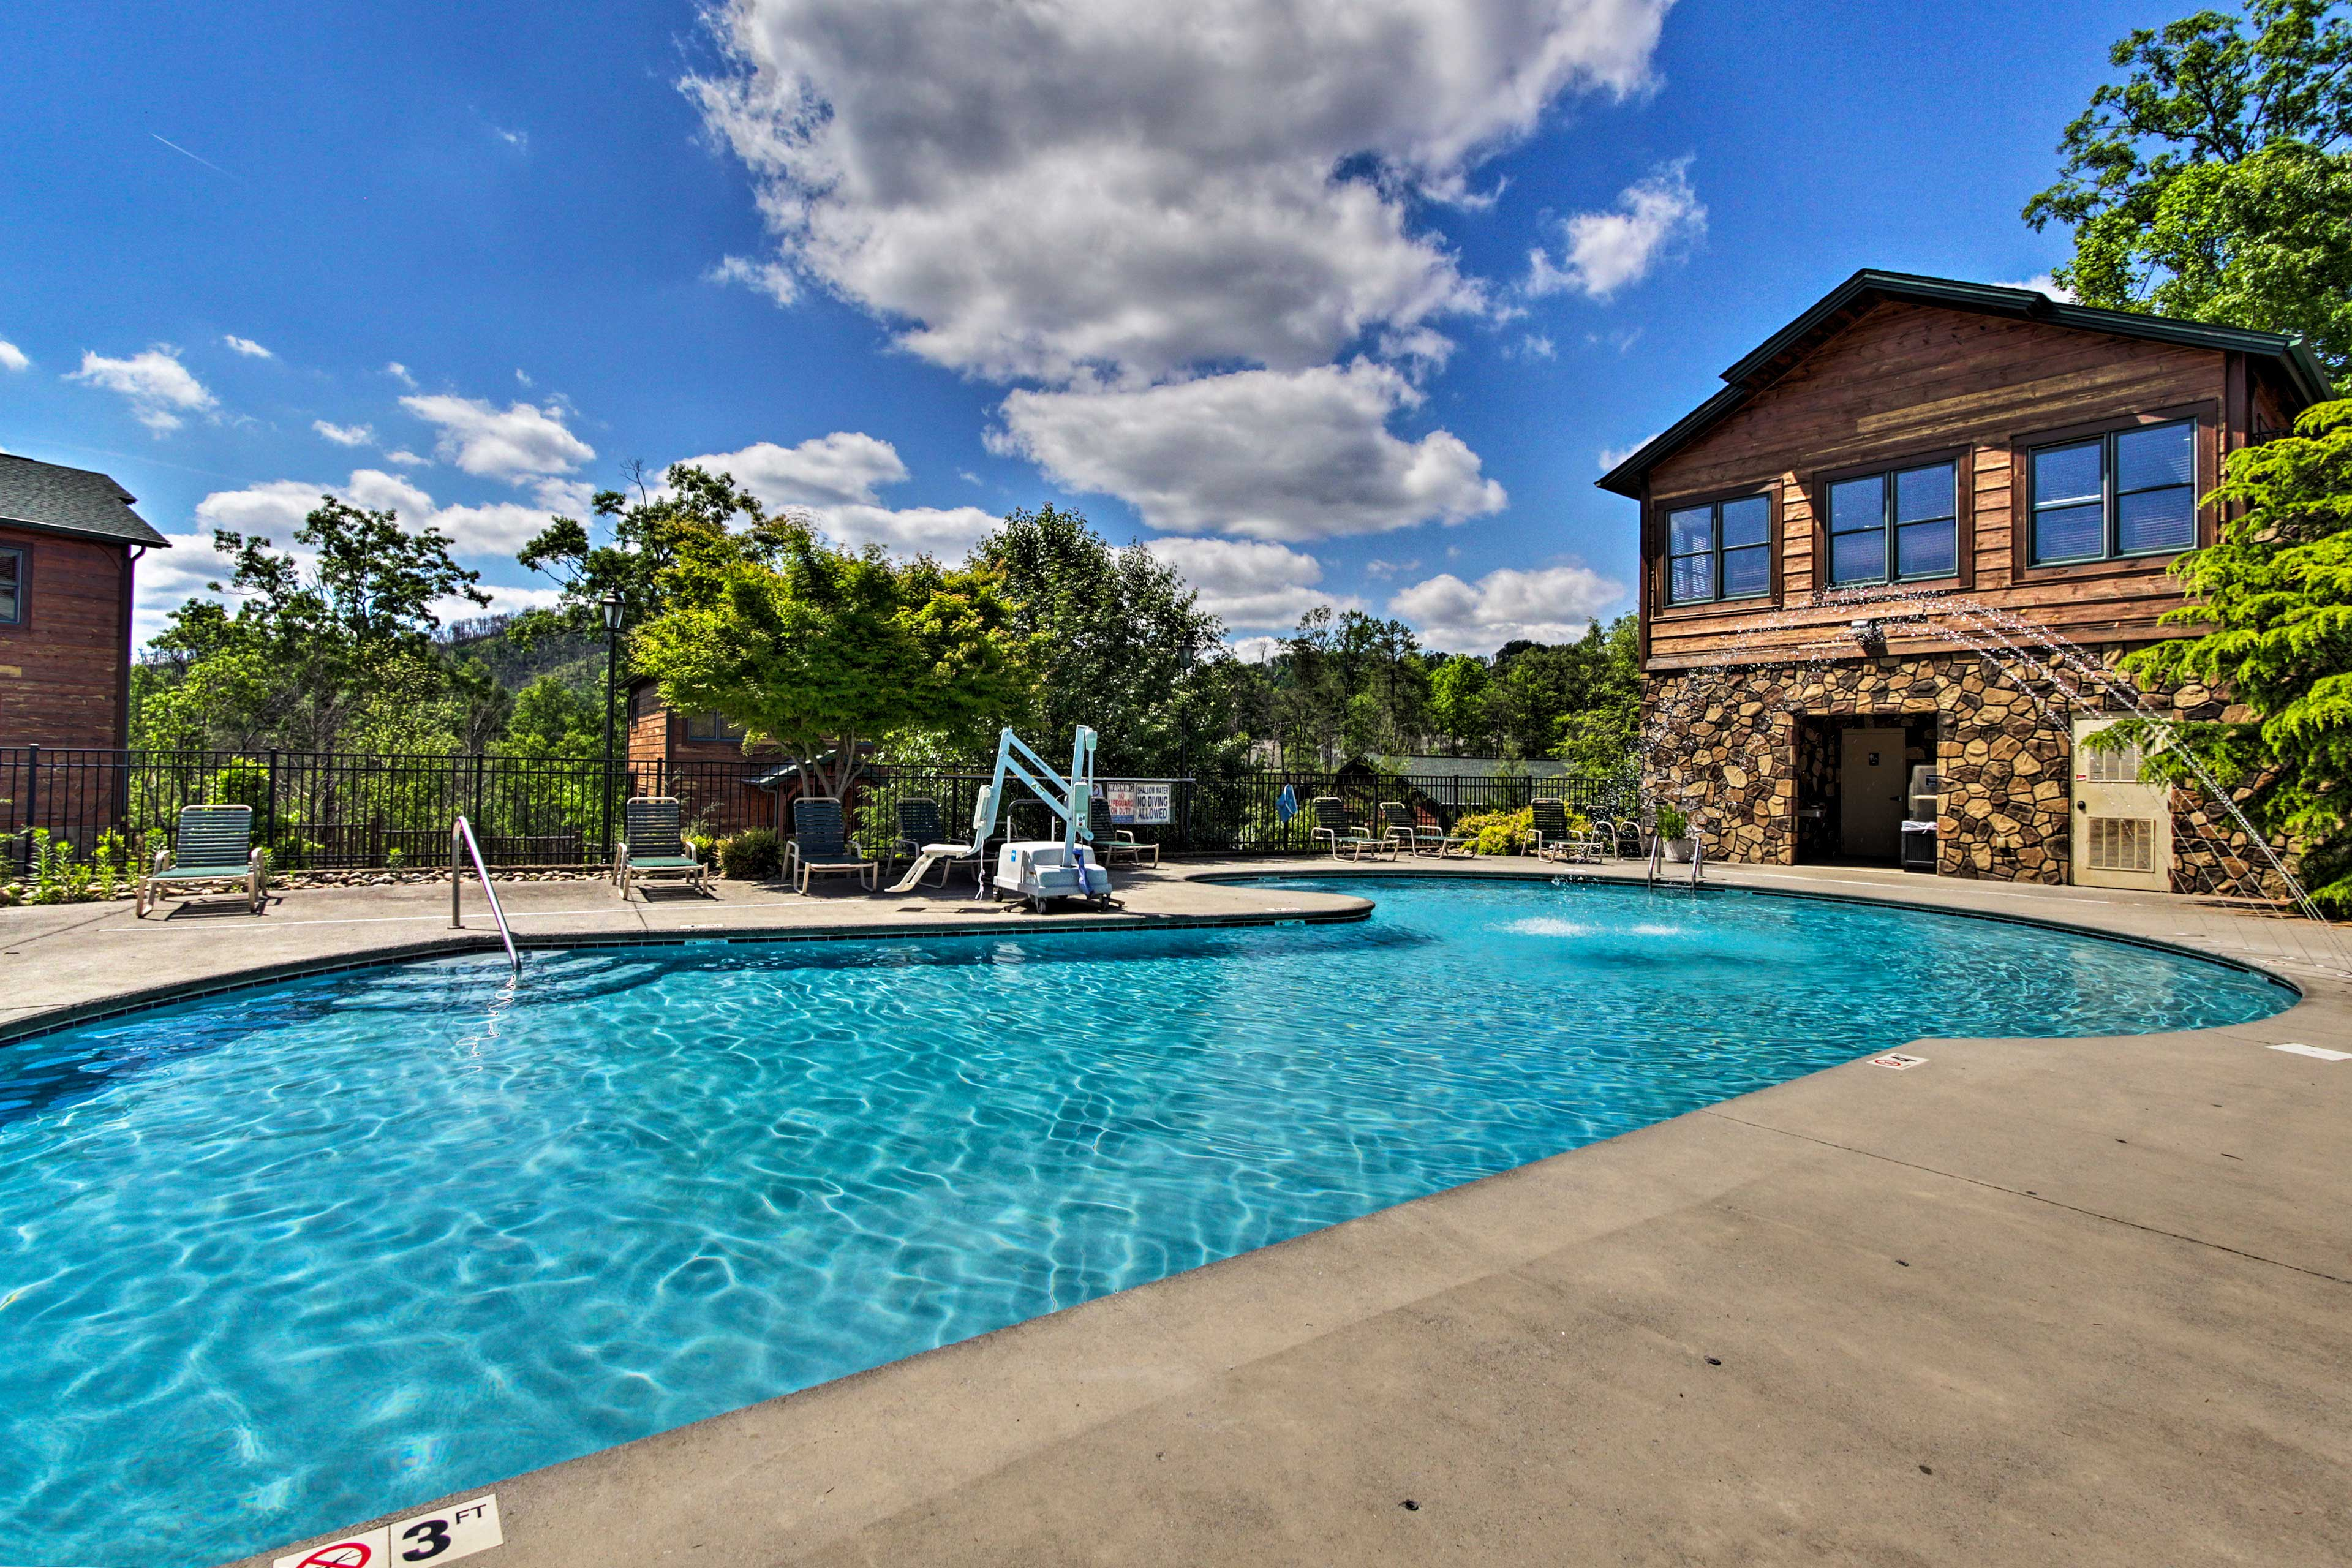 The community pool boasts ample seating in the lounge chairs.